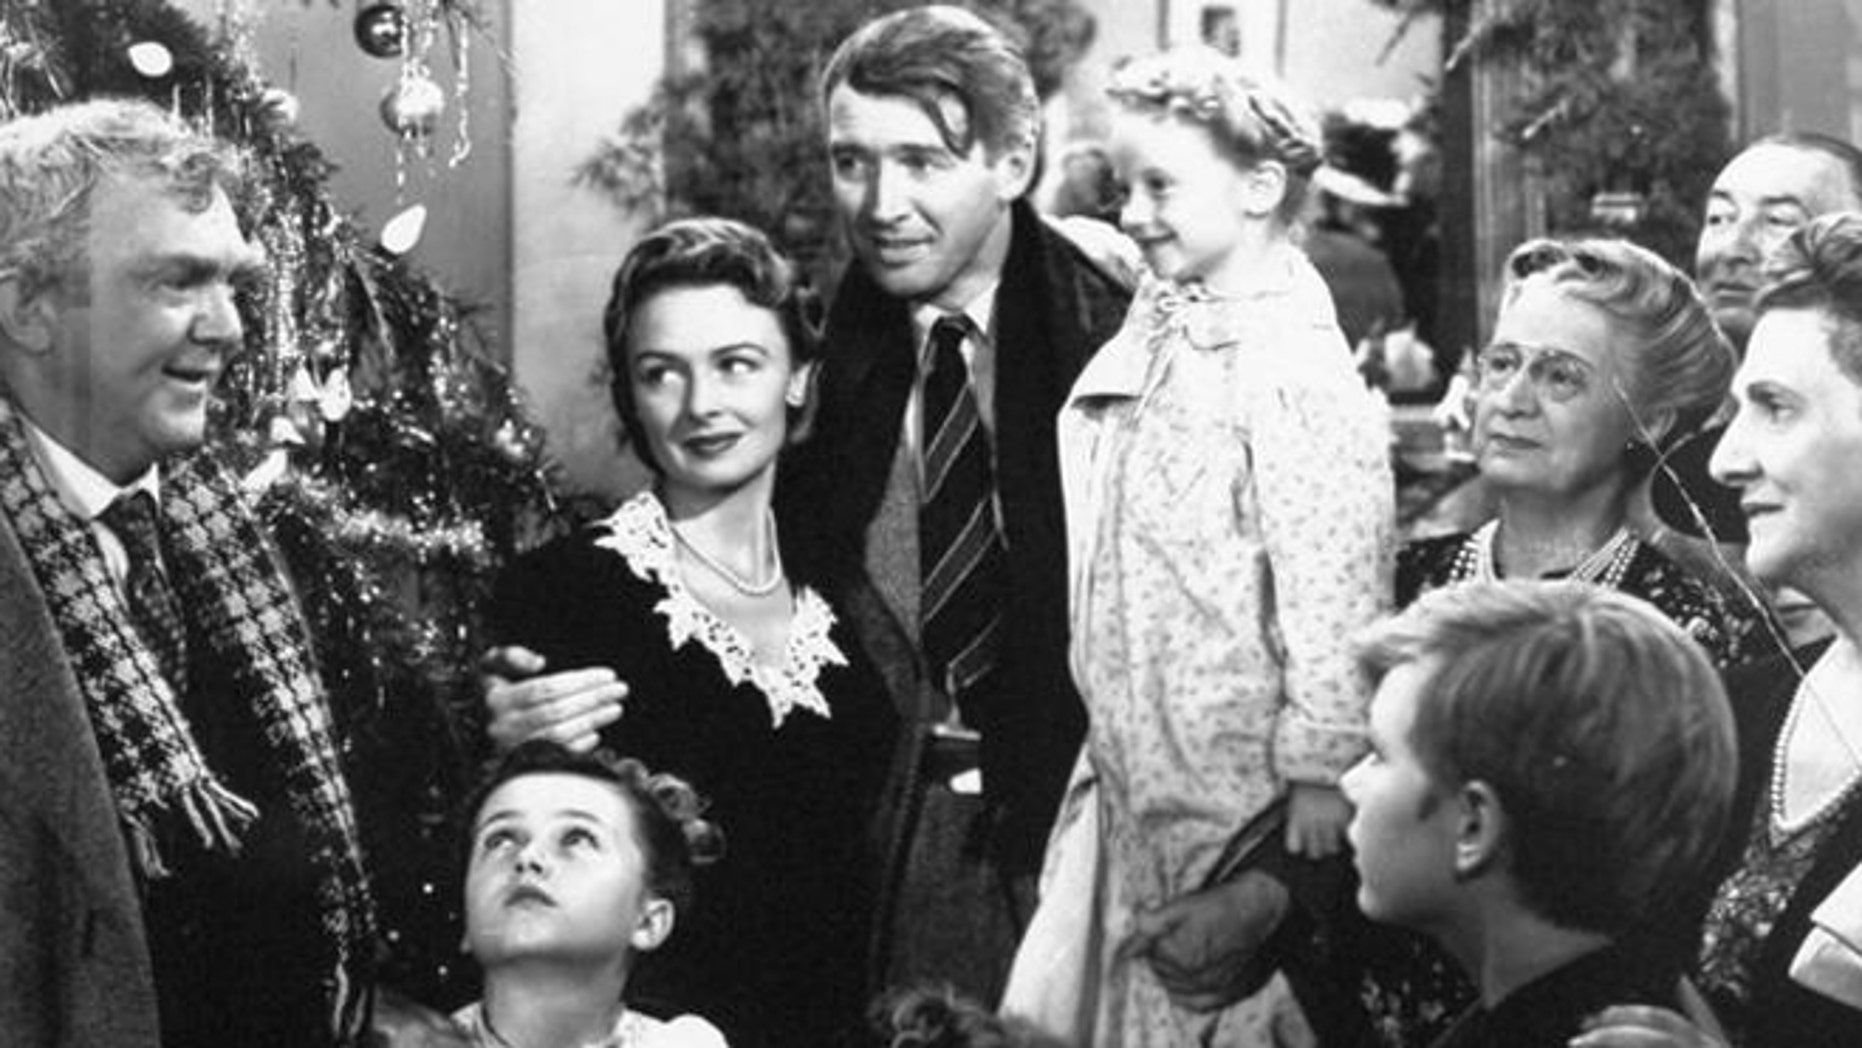 """Scene from Frank Capra's 1946 classic, """"It's a Wonderful life,"""" starring Donna Reed and Jimmy Stewart. (AP)"""